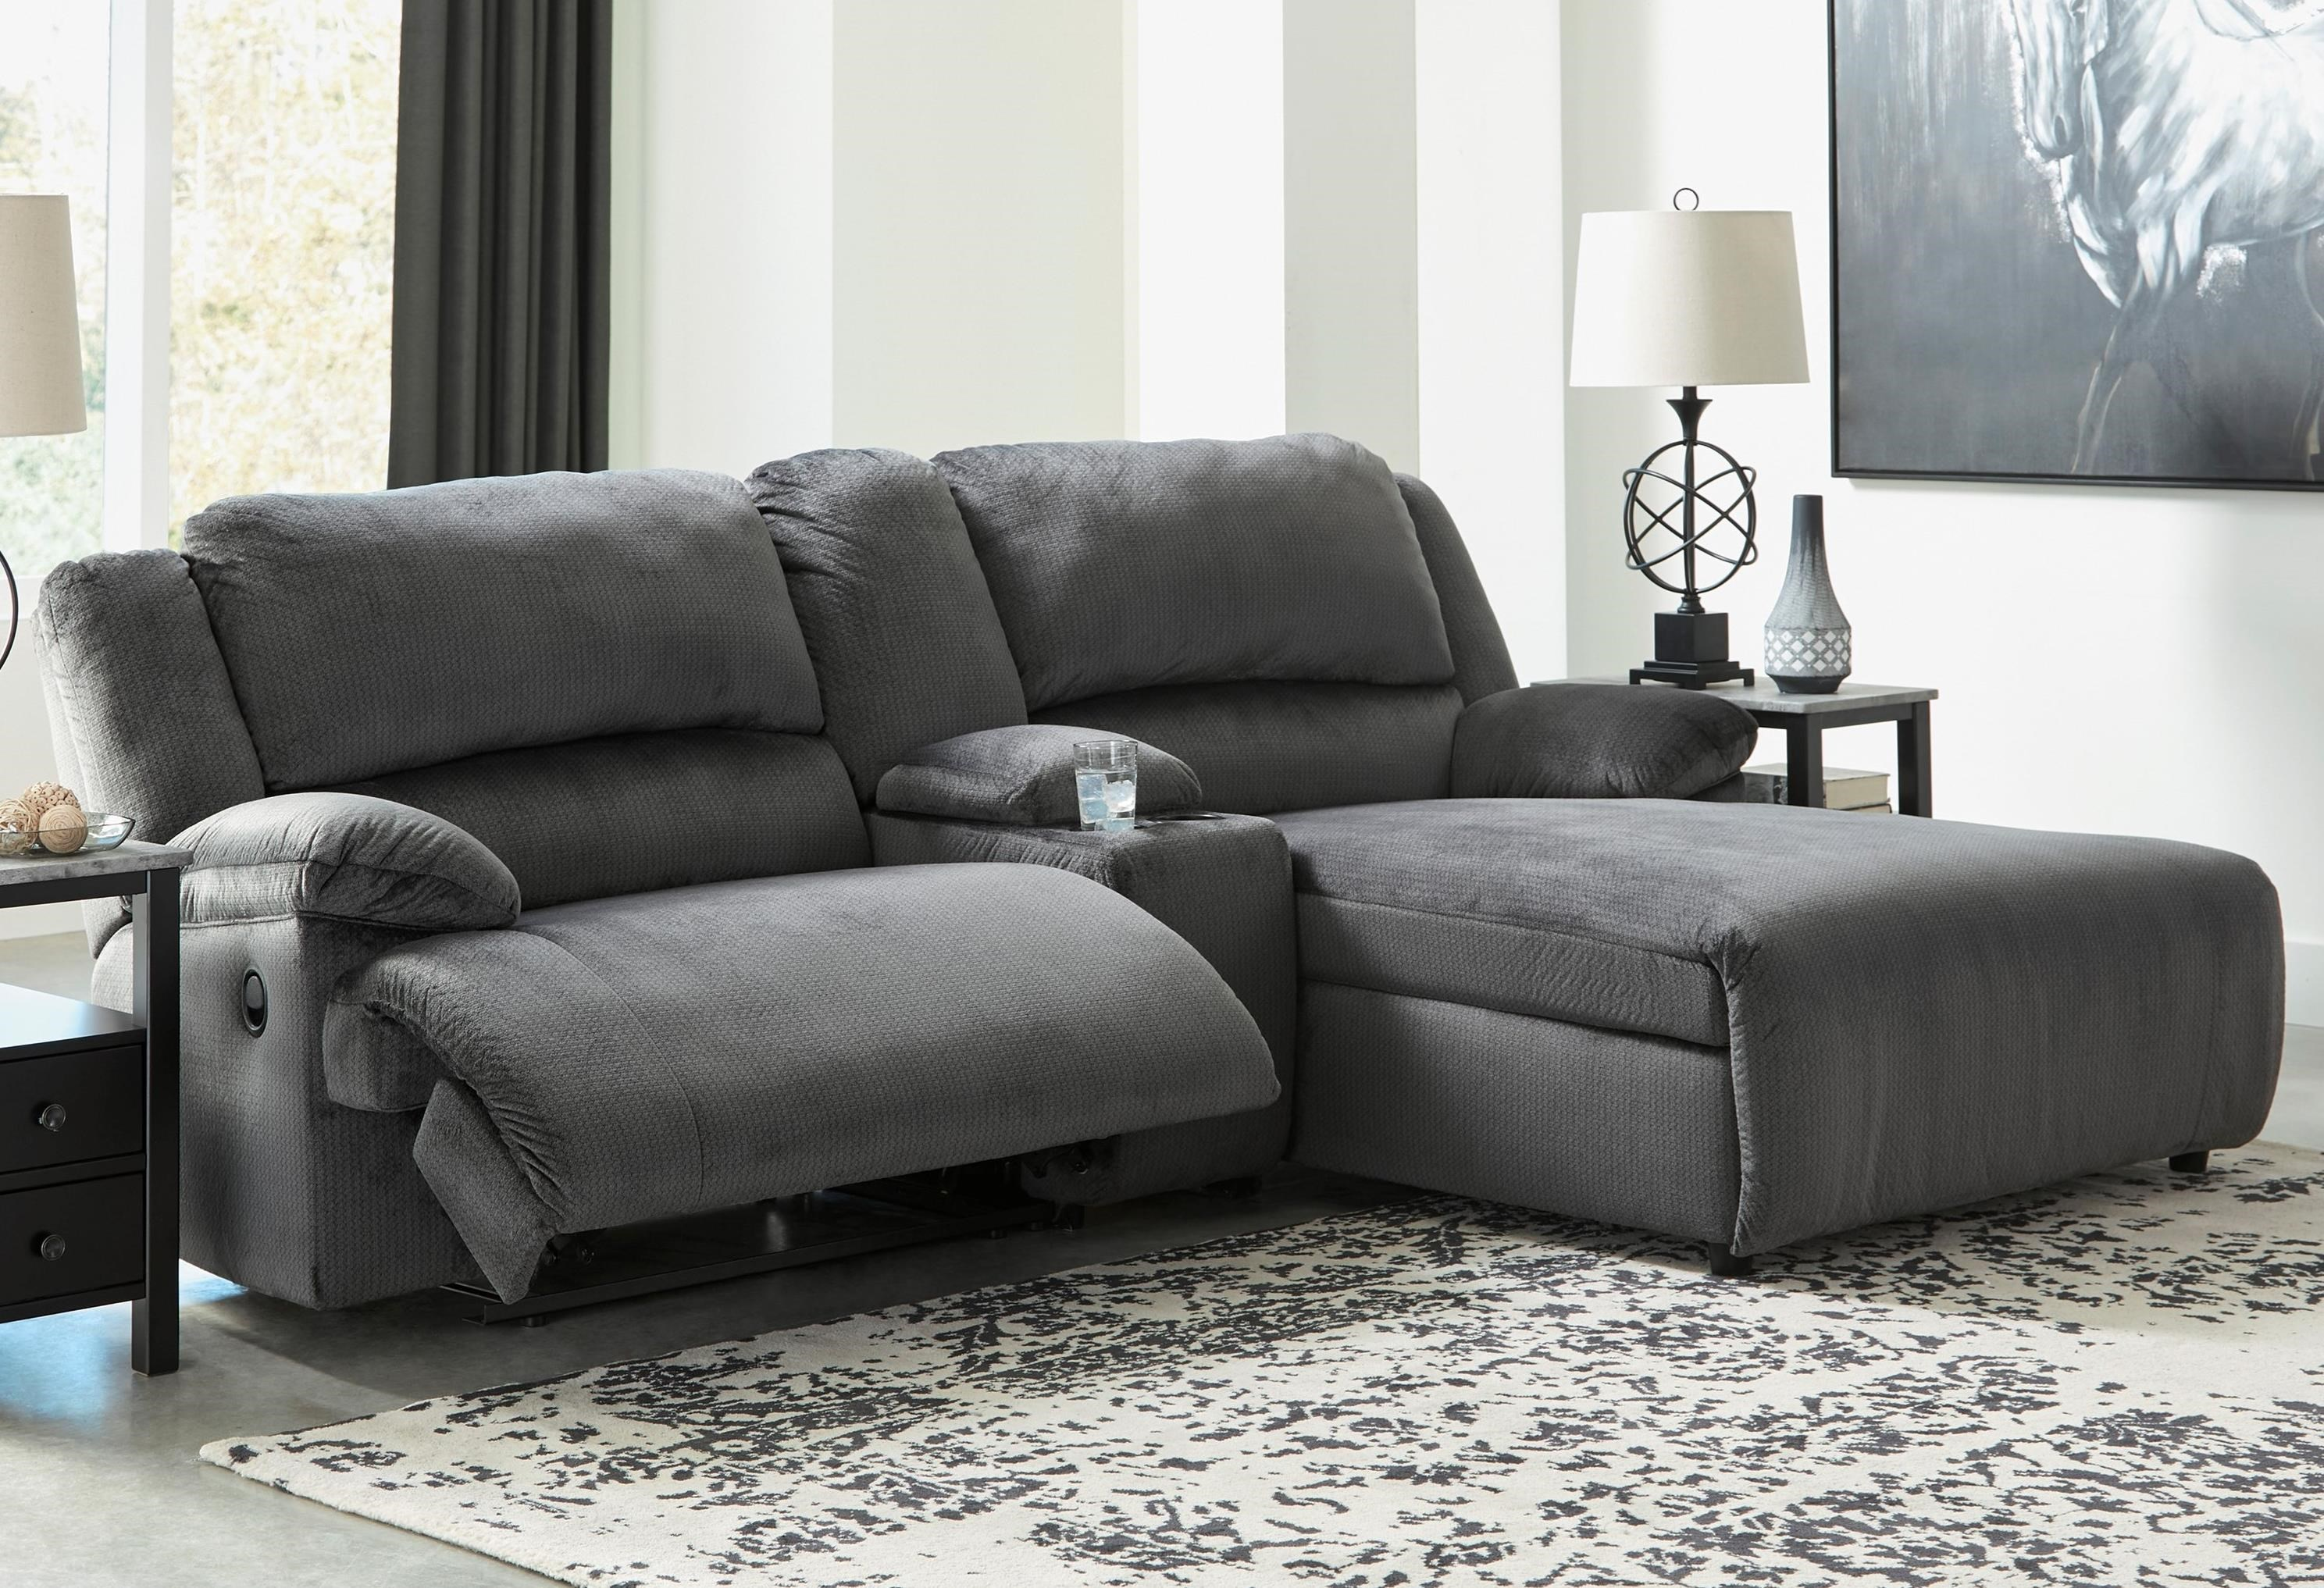 Picture of: Signature Design By Ashley Clonmel Reclining Sectional W Chaise Console Royal Furniture Reclining Sectional Sofas